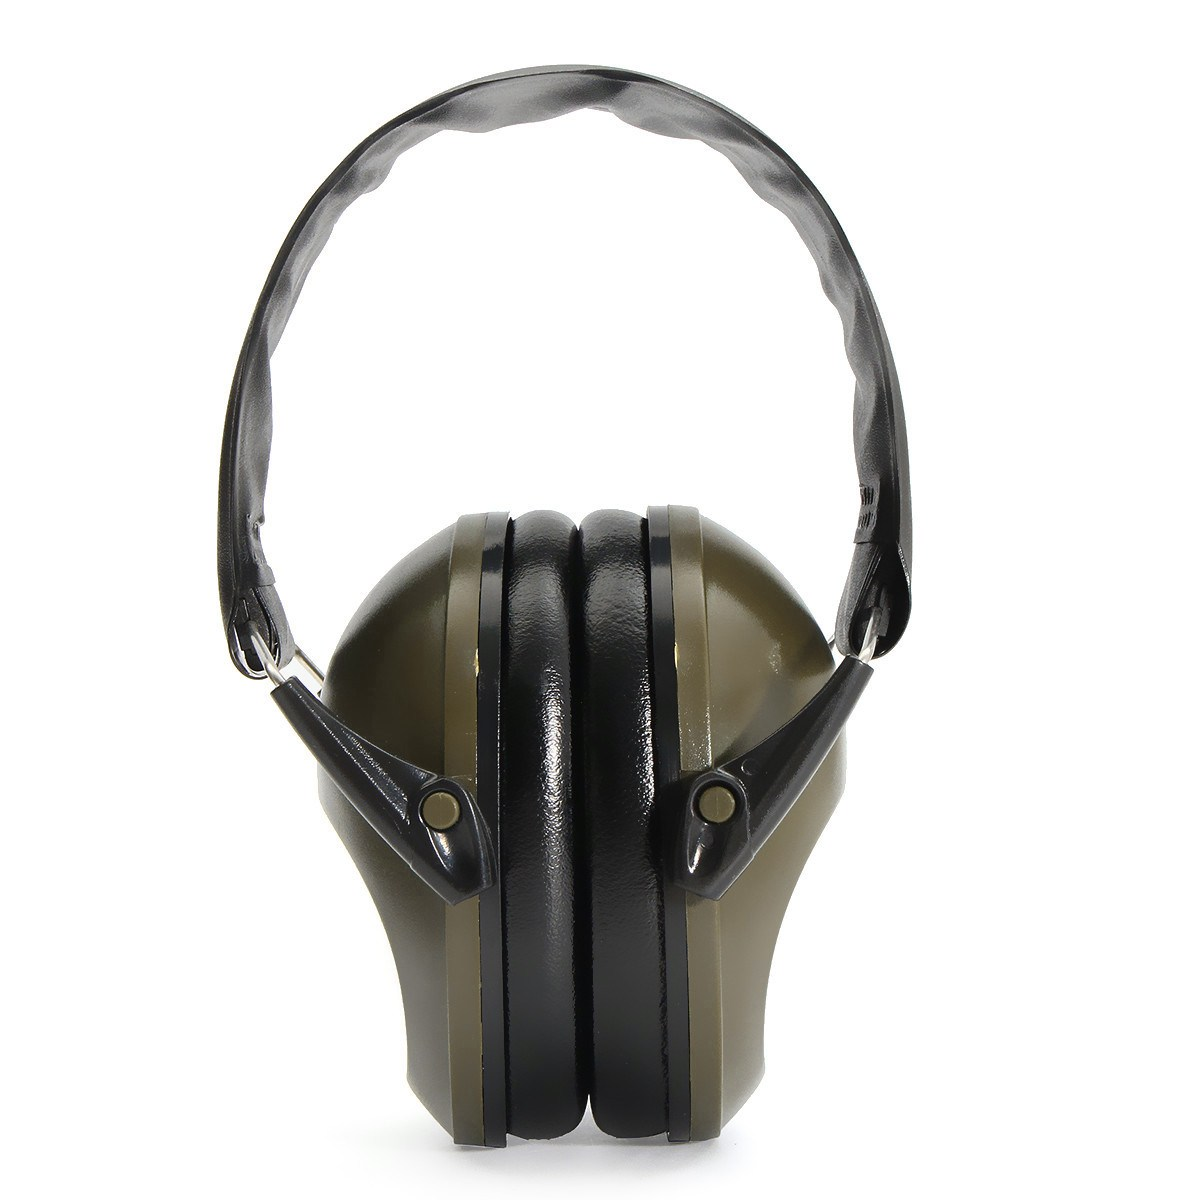 NEW Safurance Anti-noise Ear Muff Hearing Protection Soundproof Shooting Earmuffs Earphone Noise Redution Workplace Safety new safurance pro tree carving fall protection rock climbing equip gear rappelling harness workplace safety